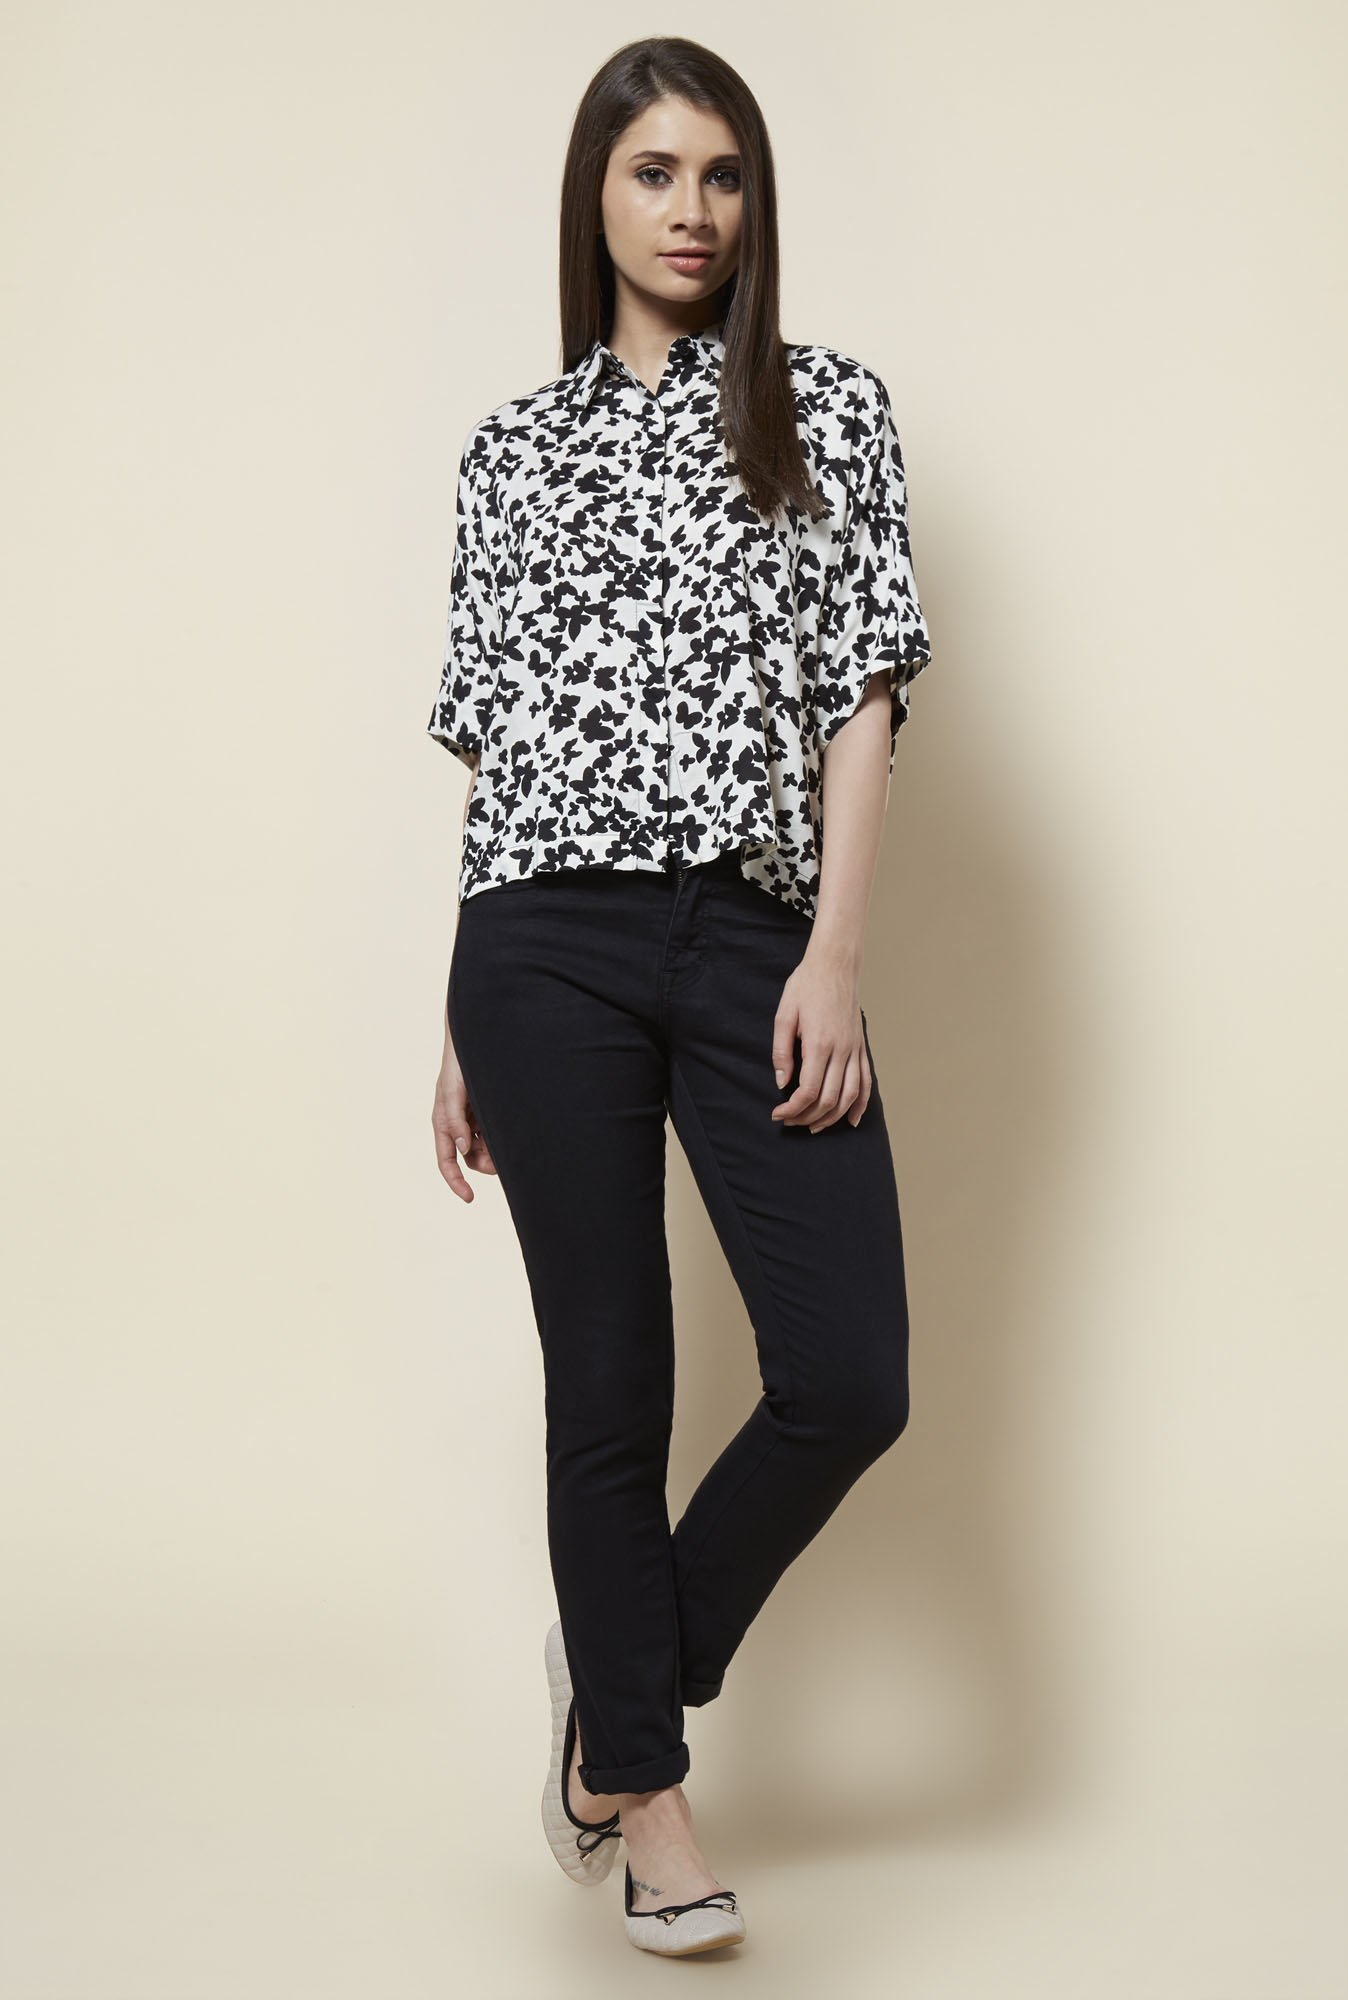 Zudio White Kenny Relaxed Fit Blouse